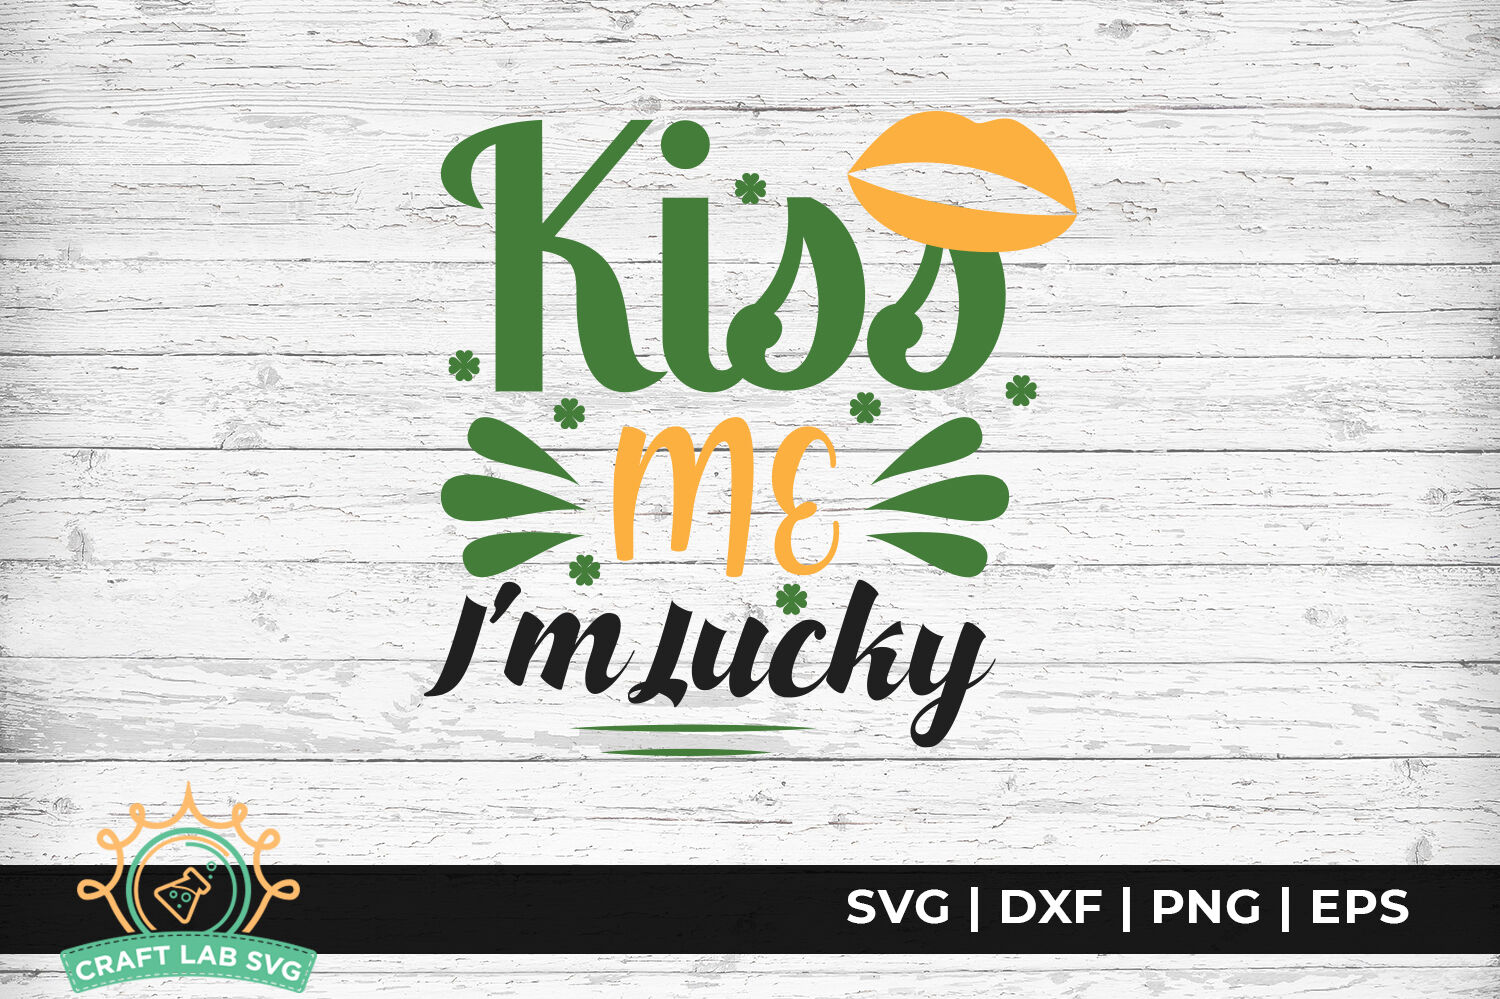 Kiss Me I M Lucky St Patrick S Day Svg Cut File By Craftlabsvg